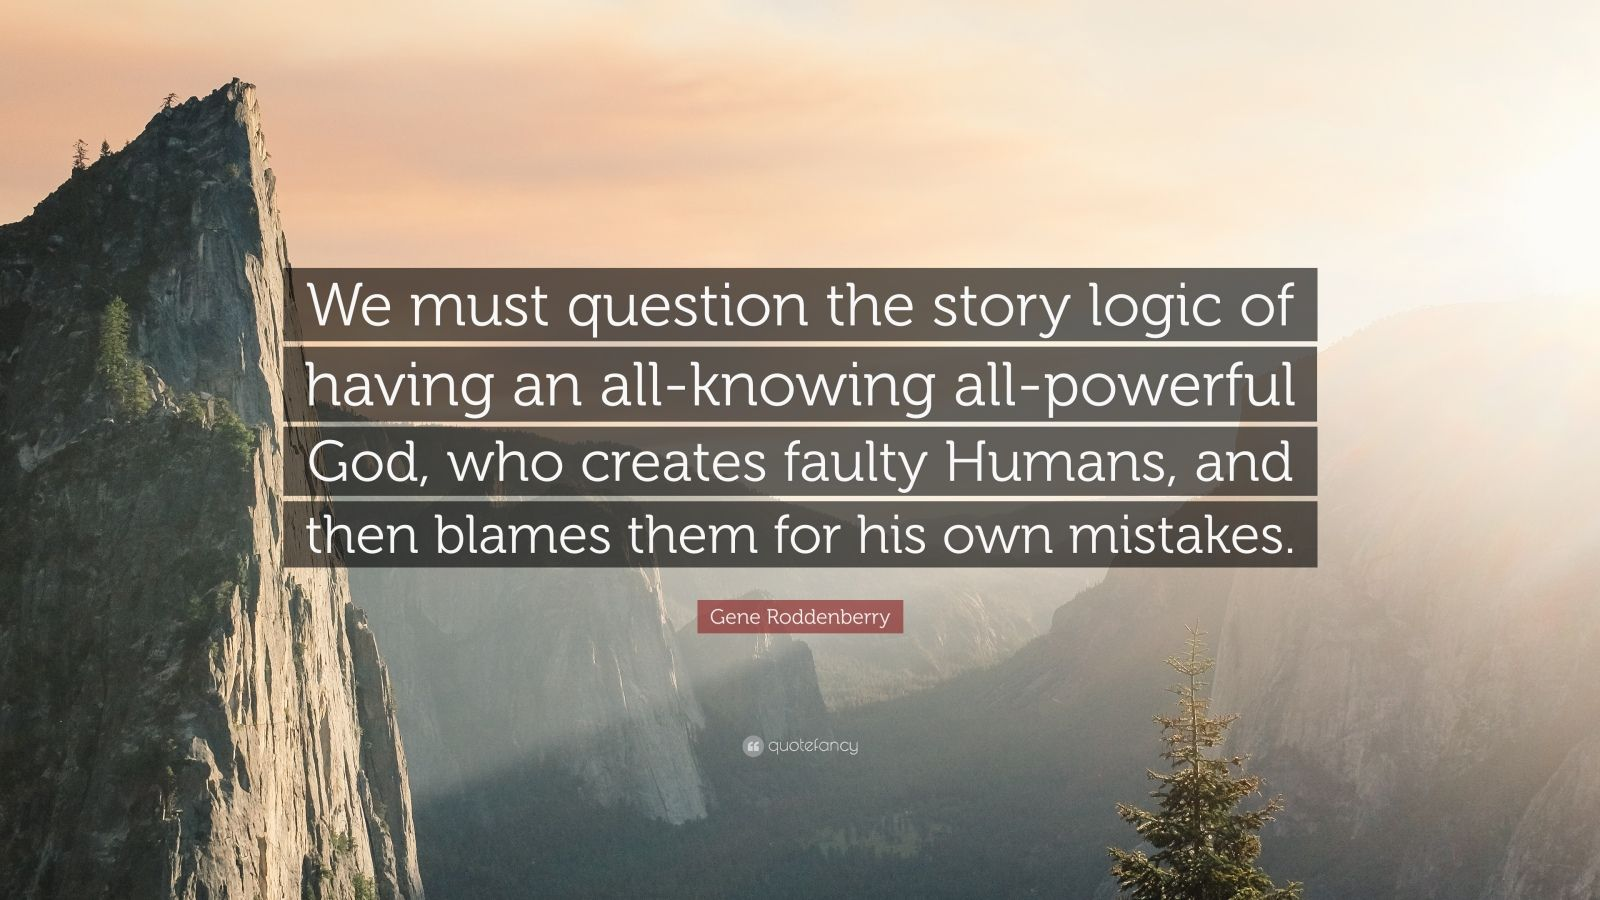 """Gene Roddenberry Quote: """"We must question the story logic of having an all-knowing all-powerful God, who creates faulty Humans, and then blames them for his own mistakes."""""""